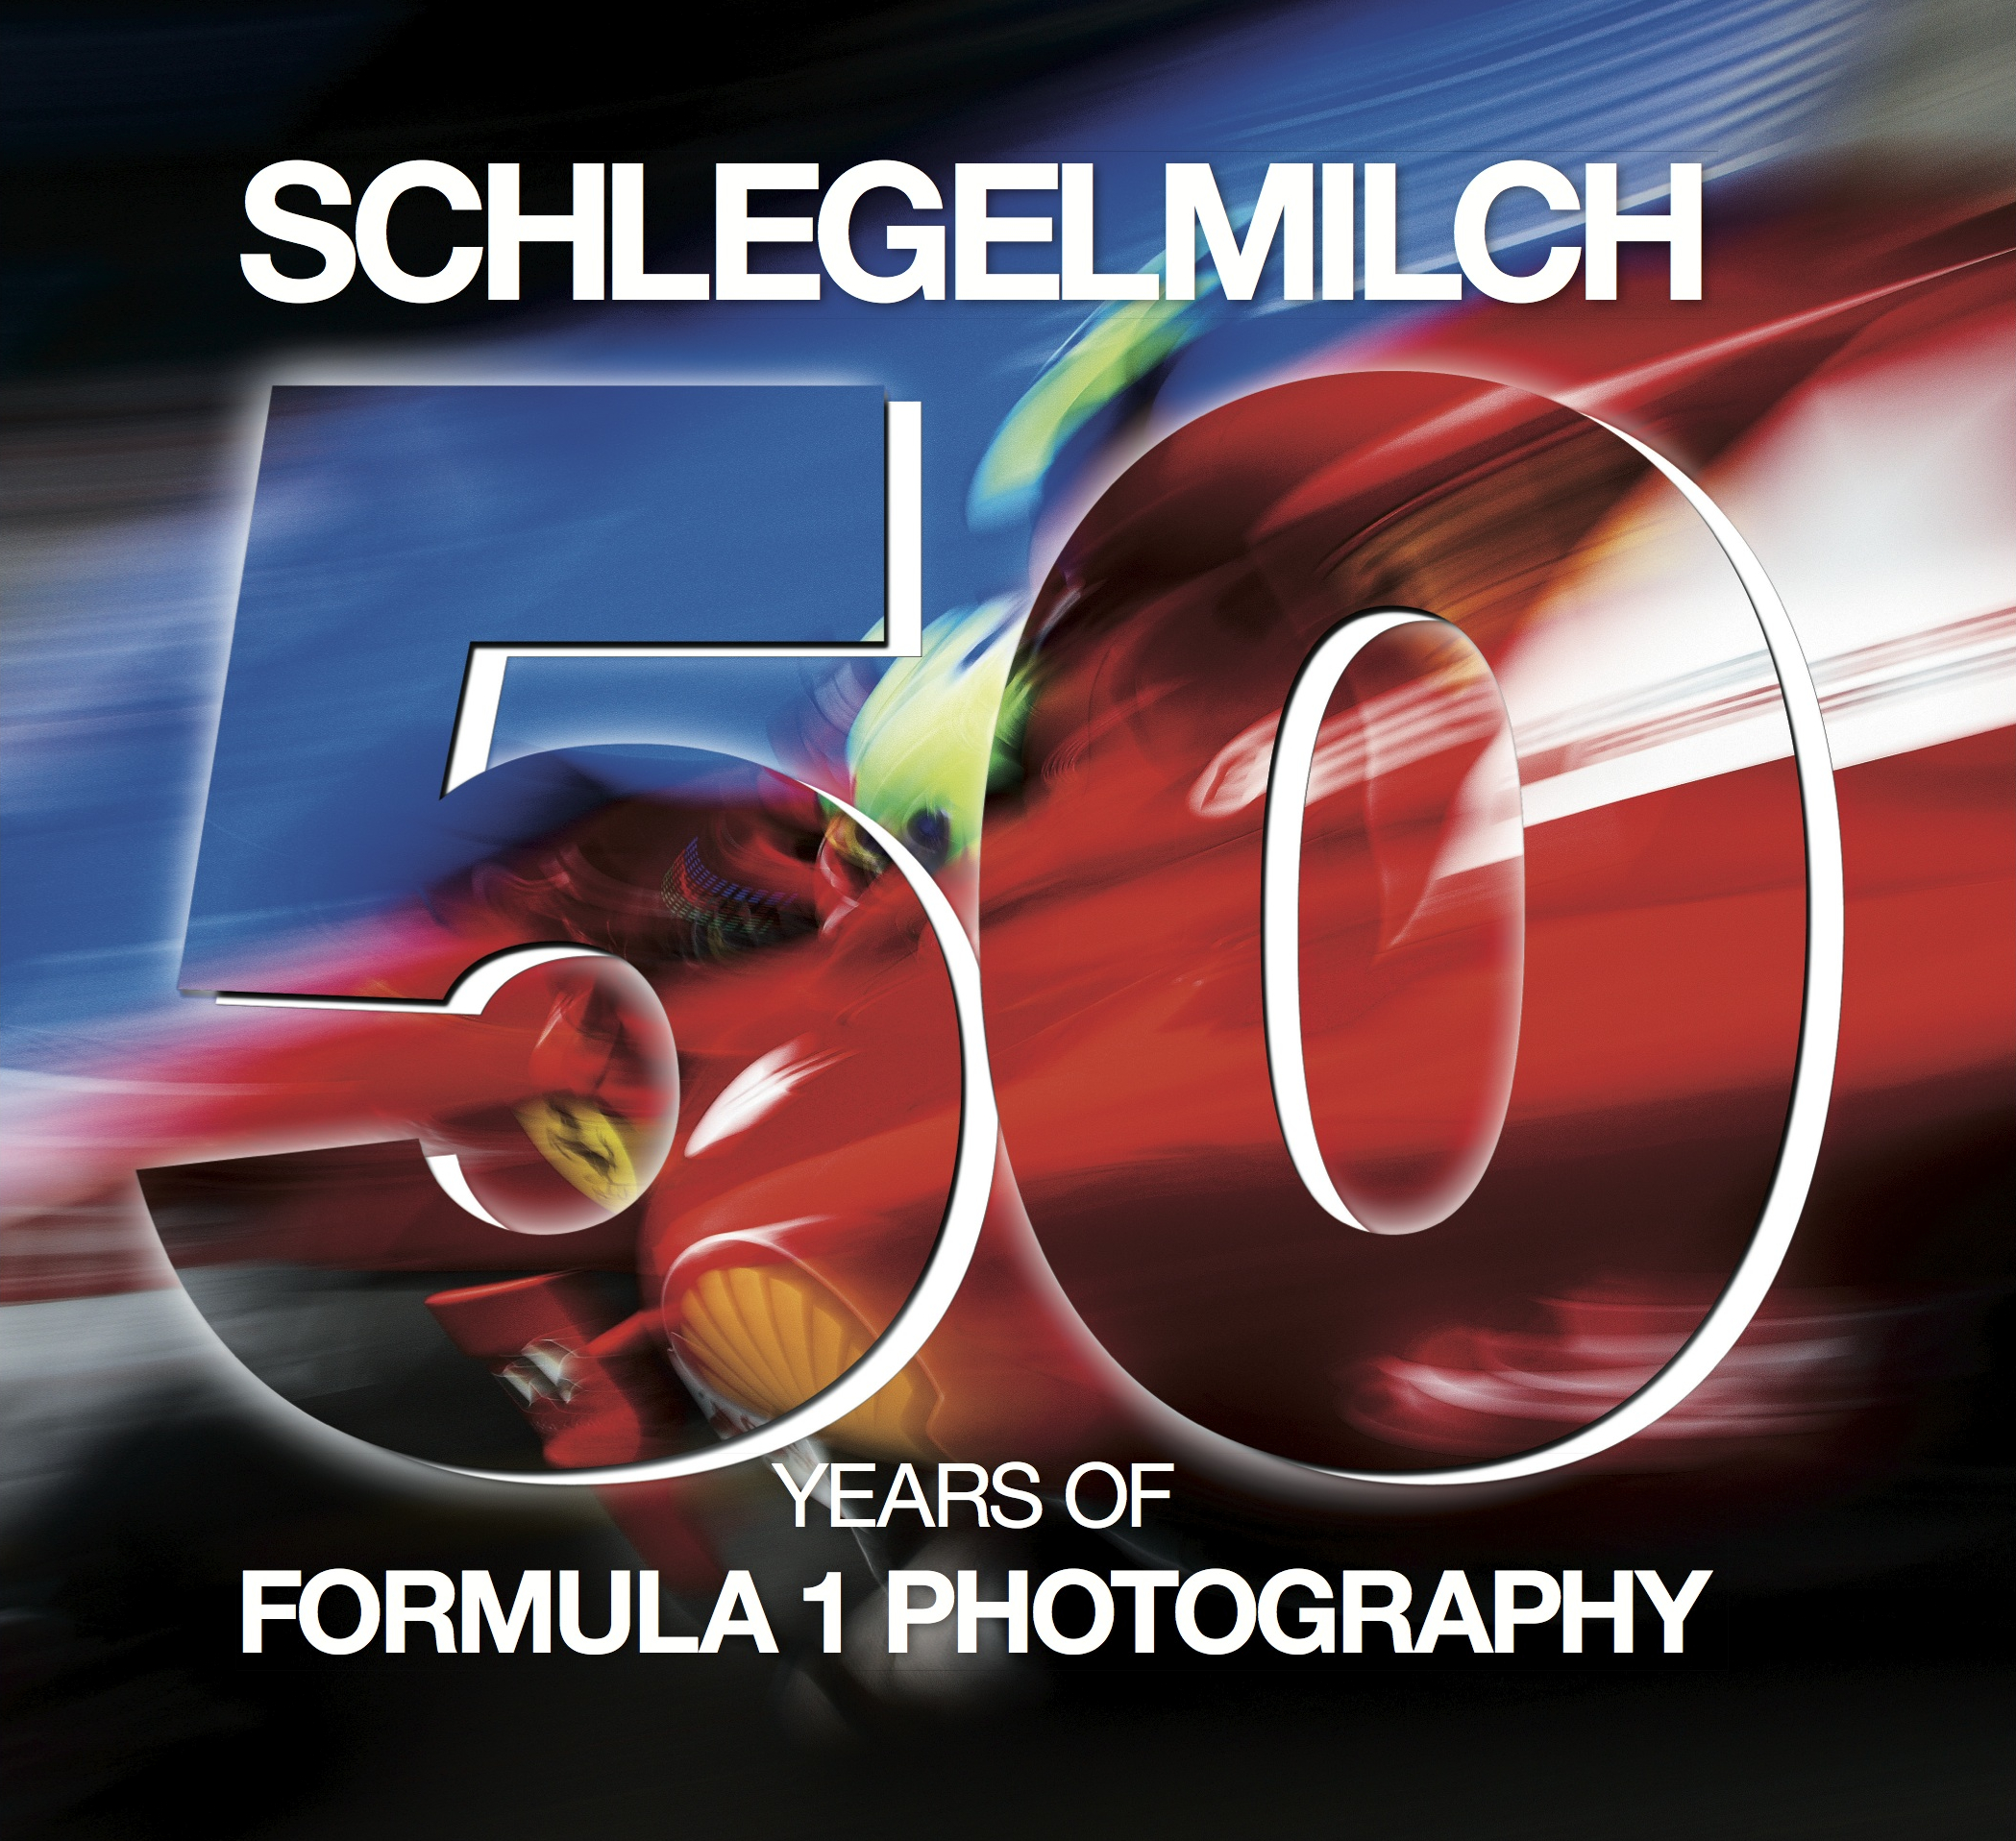 50 Years of F1 Schlegelmilch